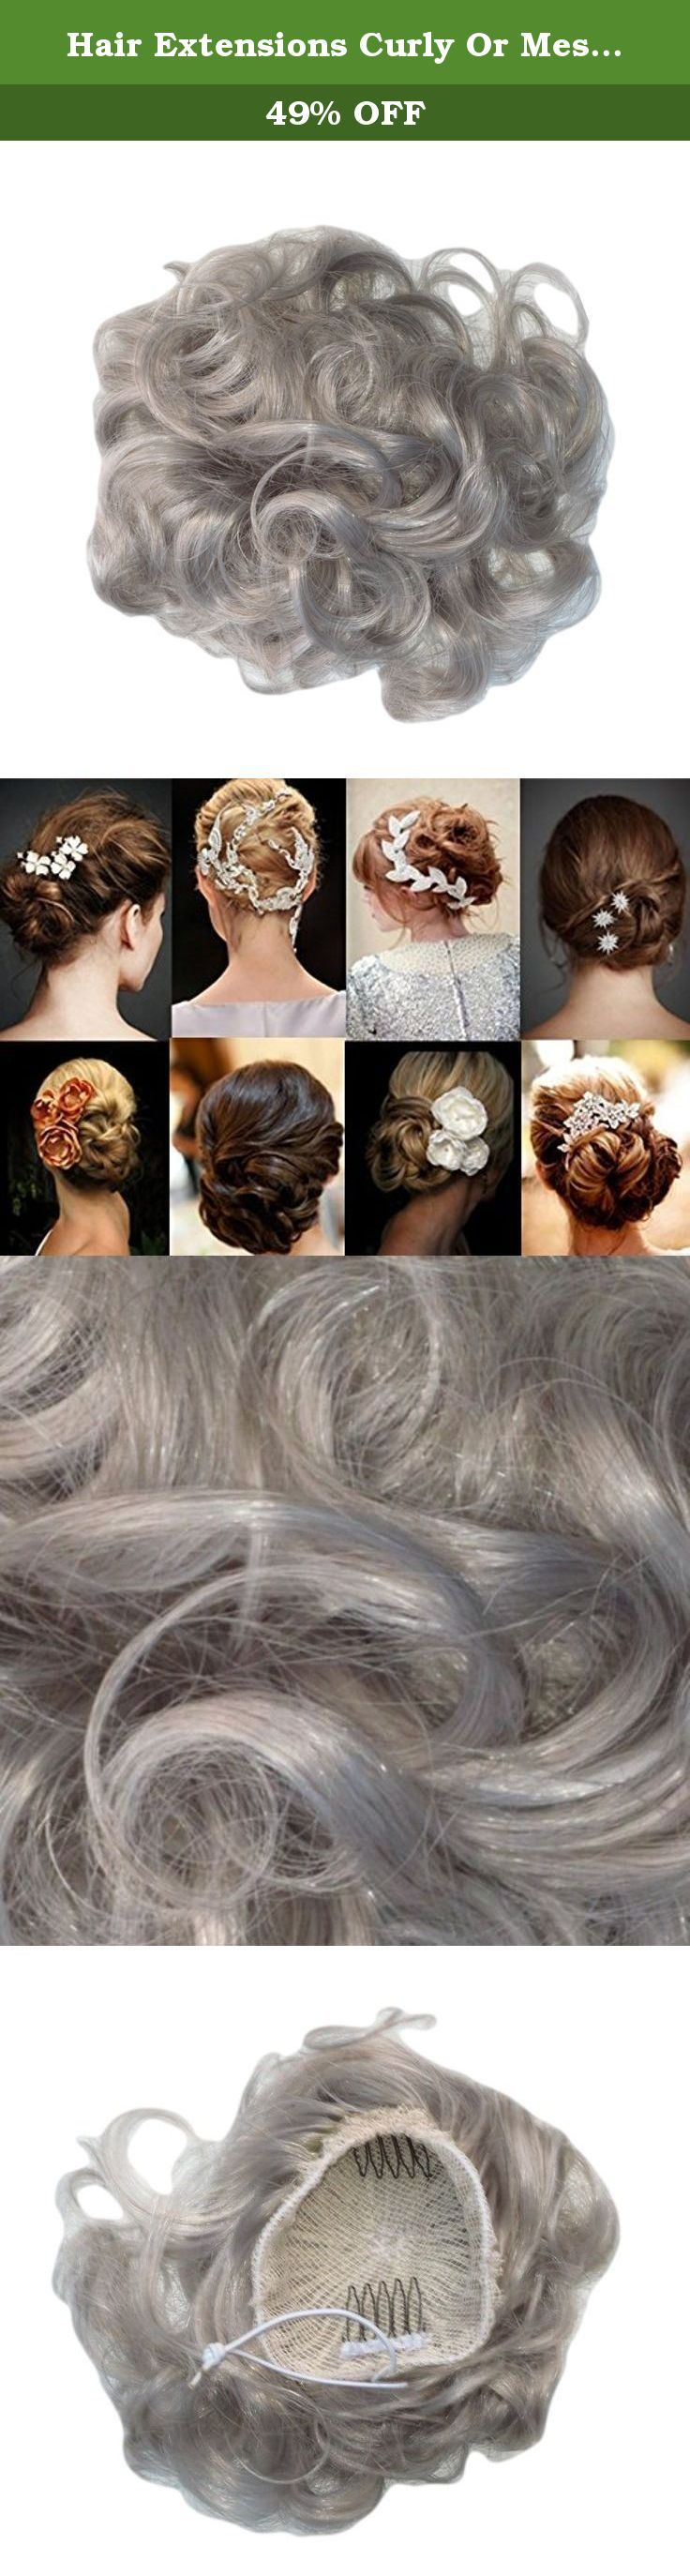 Hair Extensions Curly Or Messy Drawstring Updo Full Bun In Our Famous Silver Synthetic. Instant Girly Curly Style! A simple, little, luxurious, body creating, scrunchie. Twist on elastic so that you can vary the shape, anyone can manage the Bardot famous look. Never have a bad hair day again. Try this Multi Use curly Twister! Twister is a fabulous product you can create an updo or large bun in seconds! Wear two for an even higher curly messy look. Wear as an up do twisted round a high…